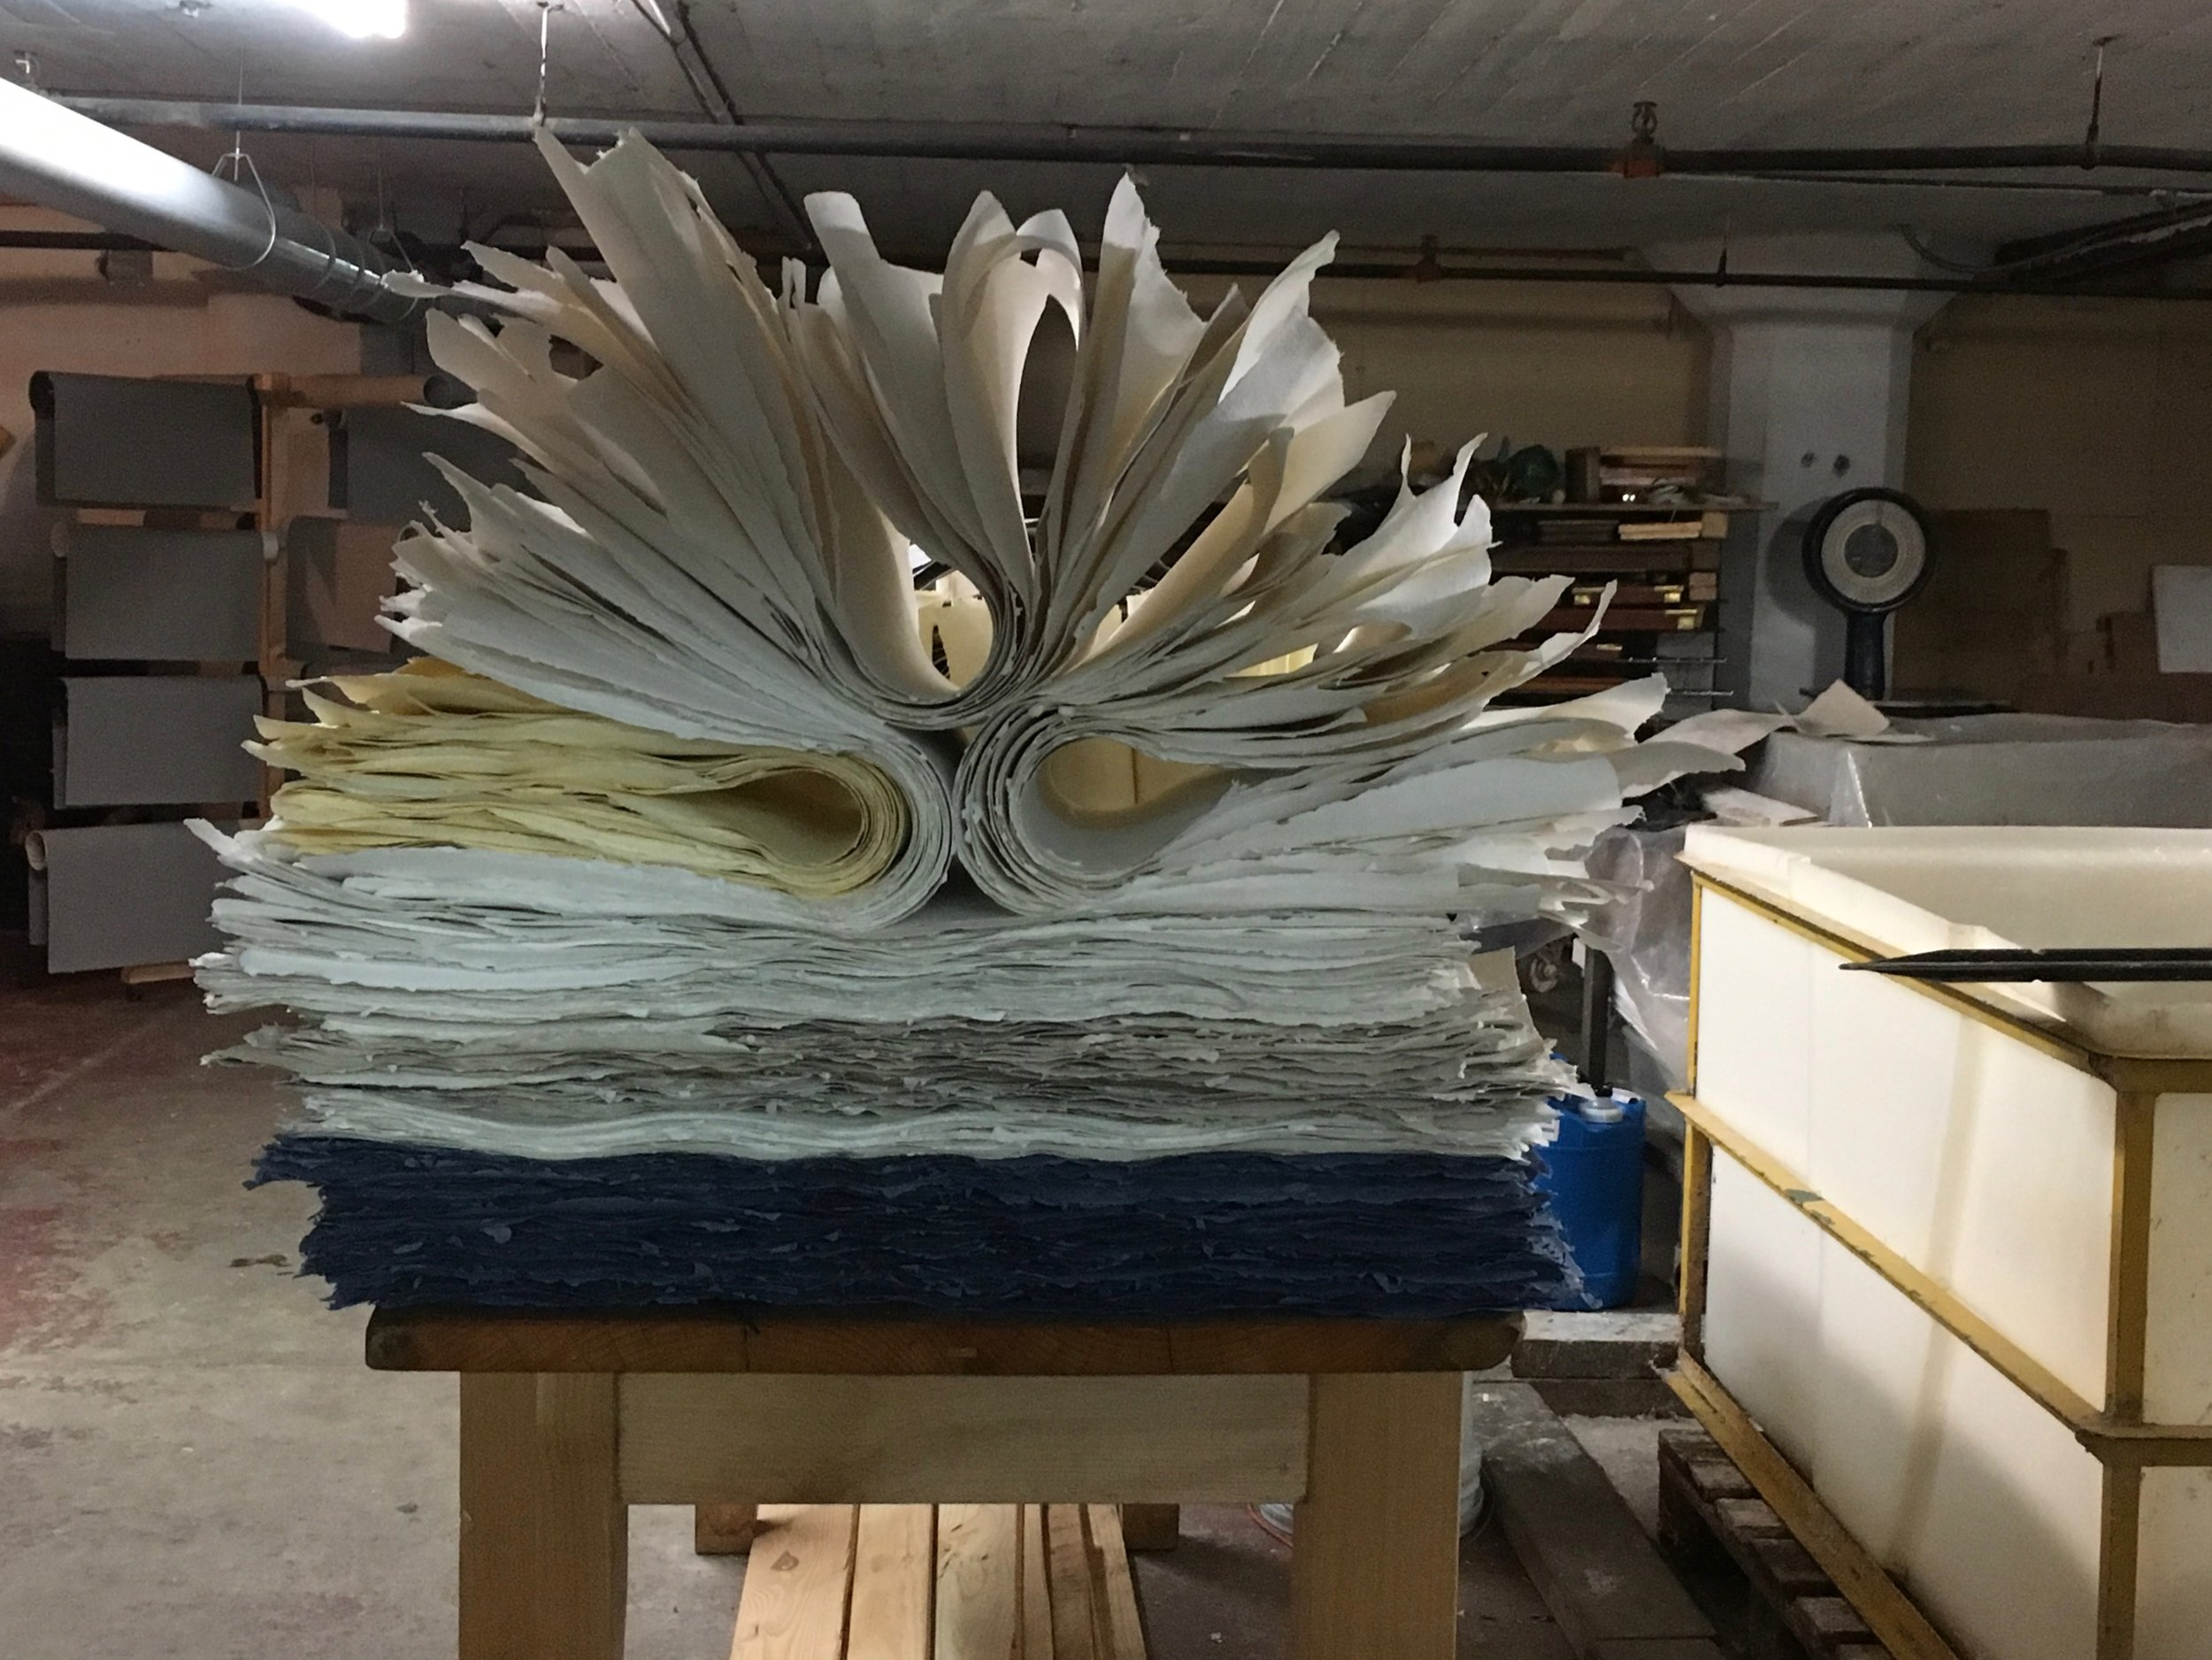 after loft drying the paper rests before being cold pressed.